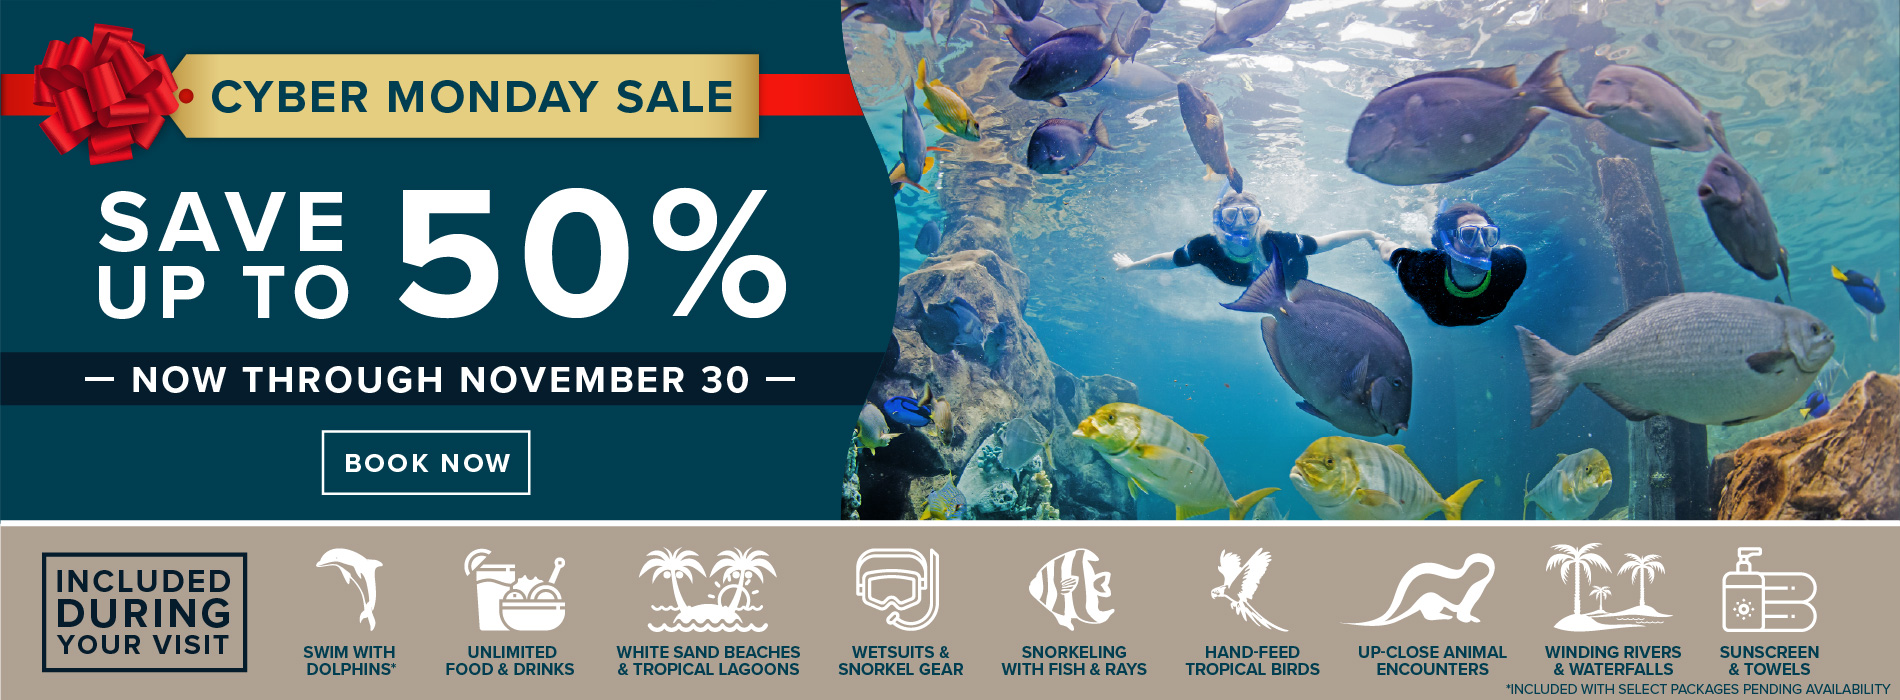 Discovery Cove Cyber Monday Sale